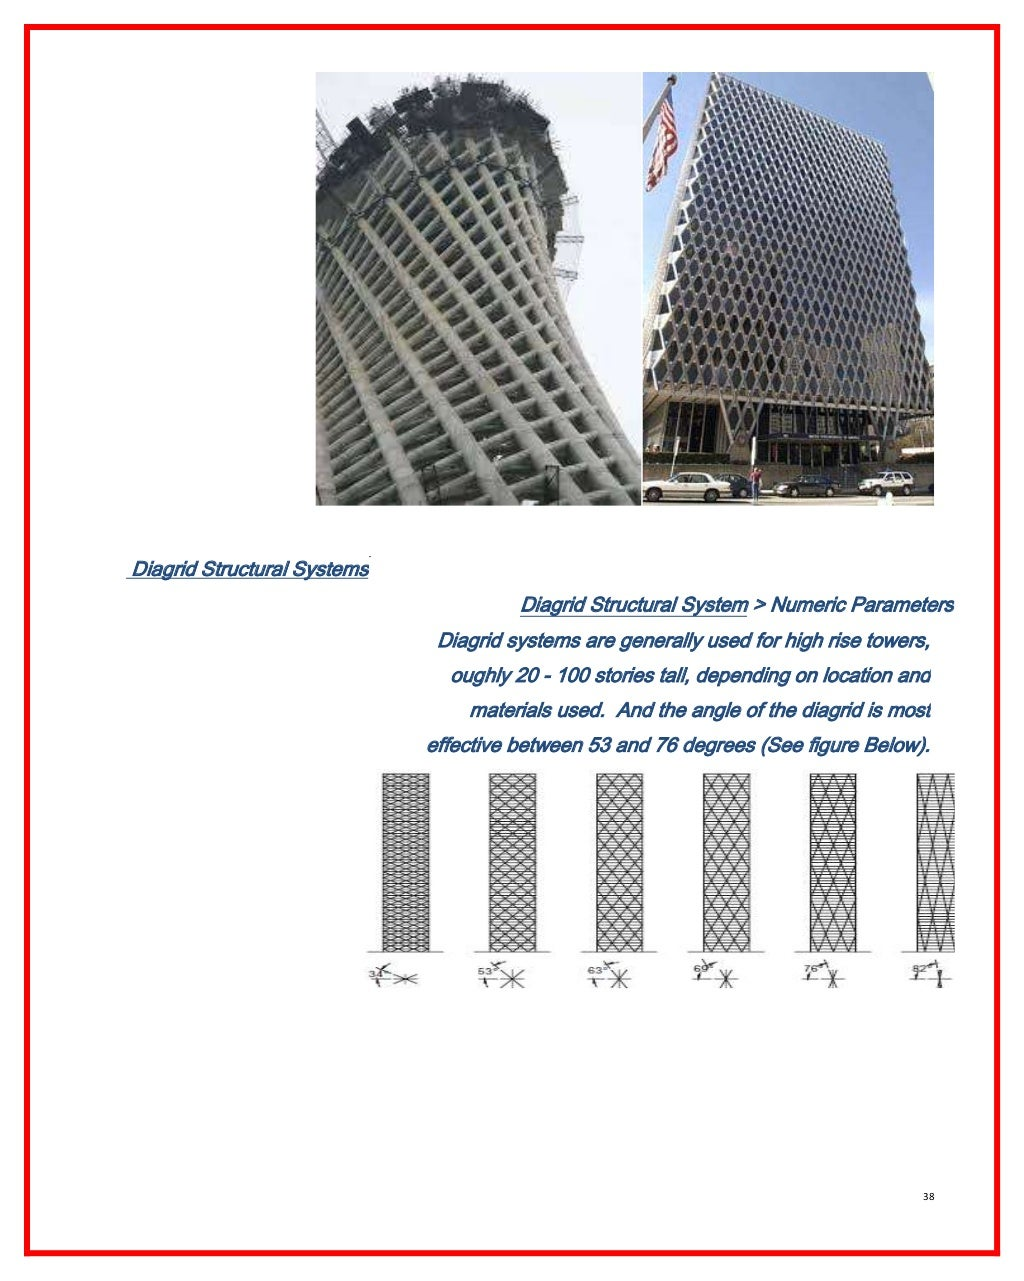 diagrid-structure-system-38-1024.jpg